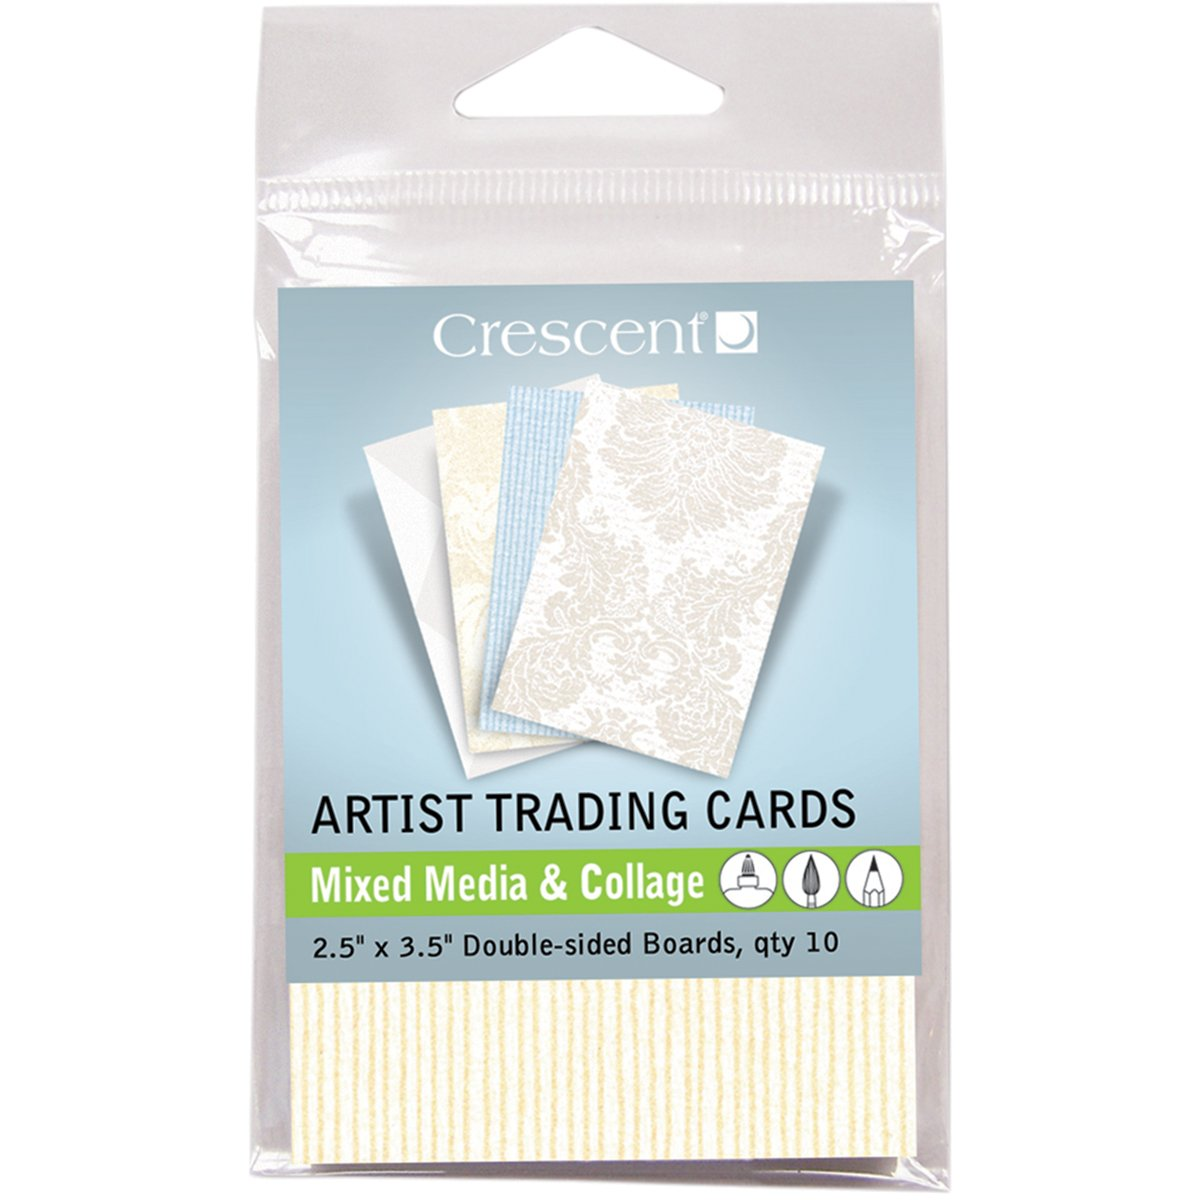 Crescent Cardboard Artist Mixed Media & Collage Trading Cards (10 Pack), 2.5' by 3.5', Vintage Prints